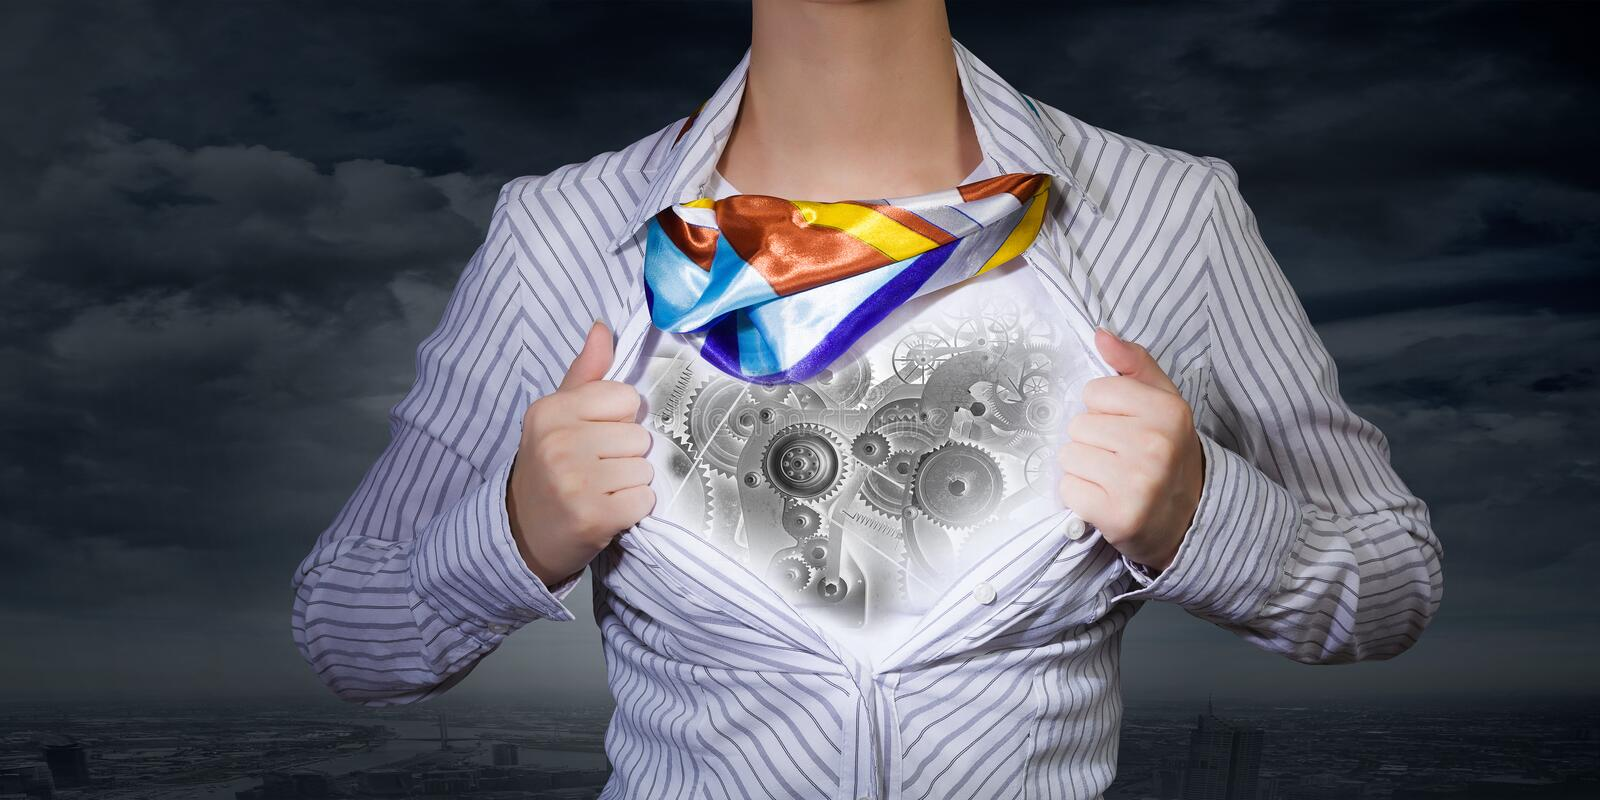 Super woman. Young woman tearing shirt on chest. Mechanism concept stock images